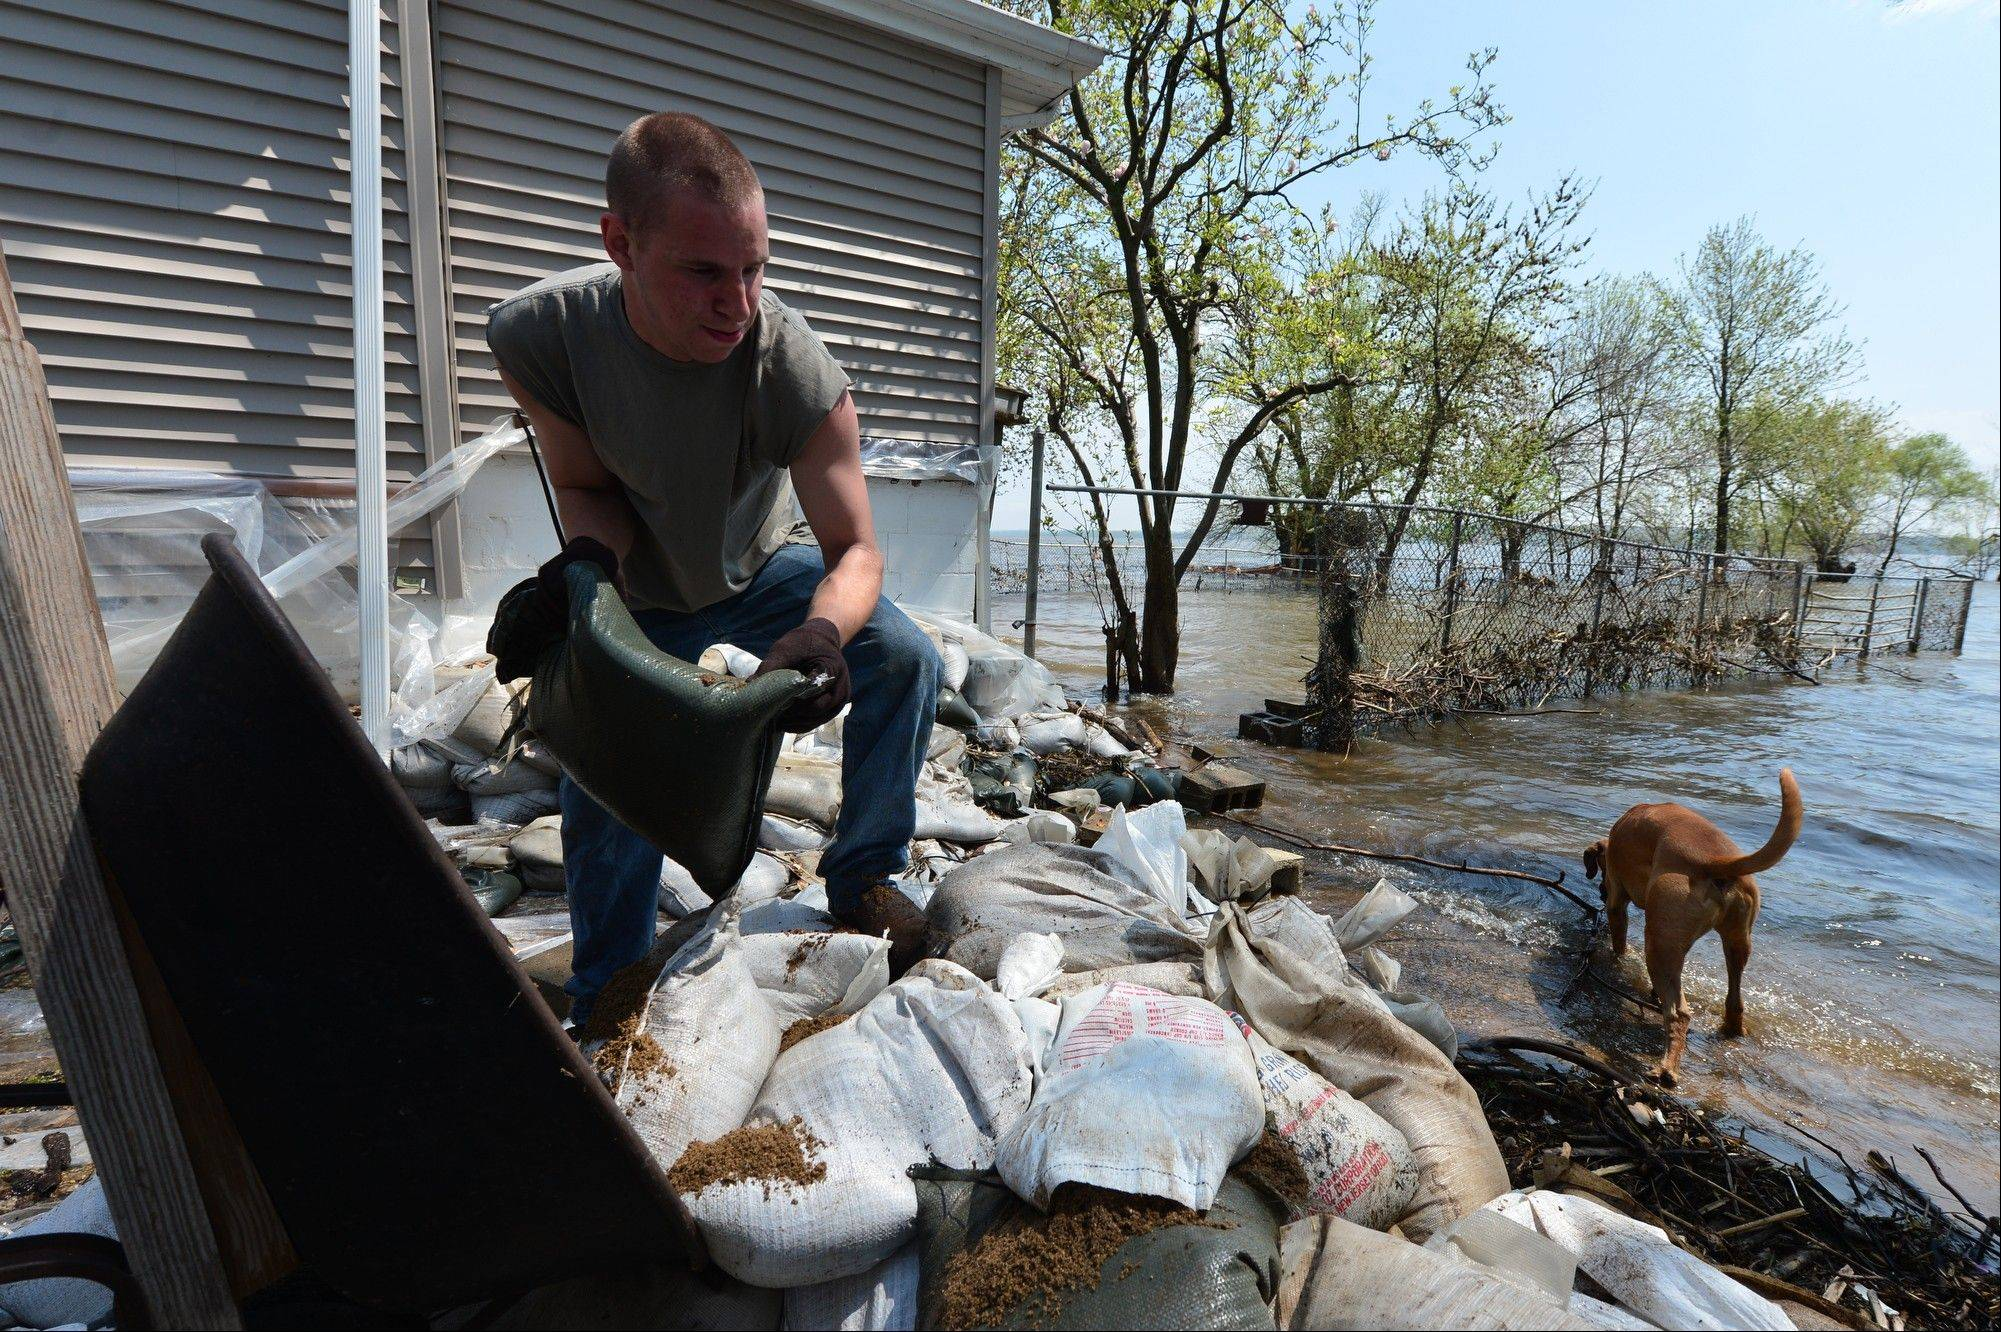 Ian Jones helps move sandbags to build back up a wall on along Riverview Road Thursday, May 2, 2013, south of Chillicothe, Ill., against the Illinois River as predicted rain is expected to raise the river several inches after receding from historic flood levels.